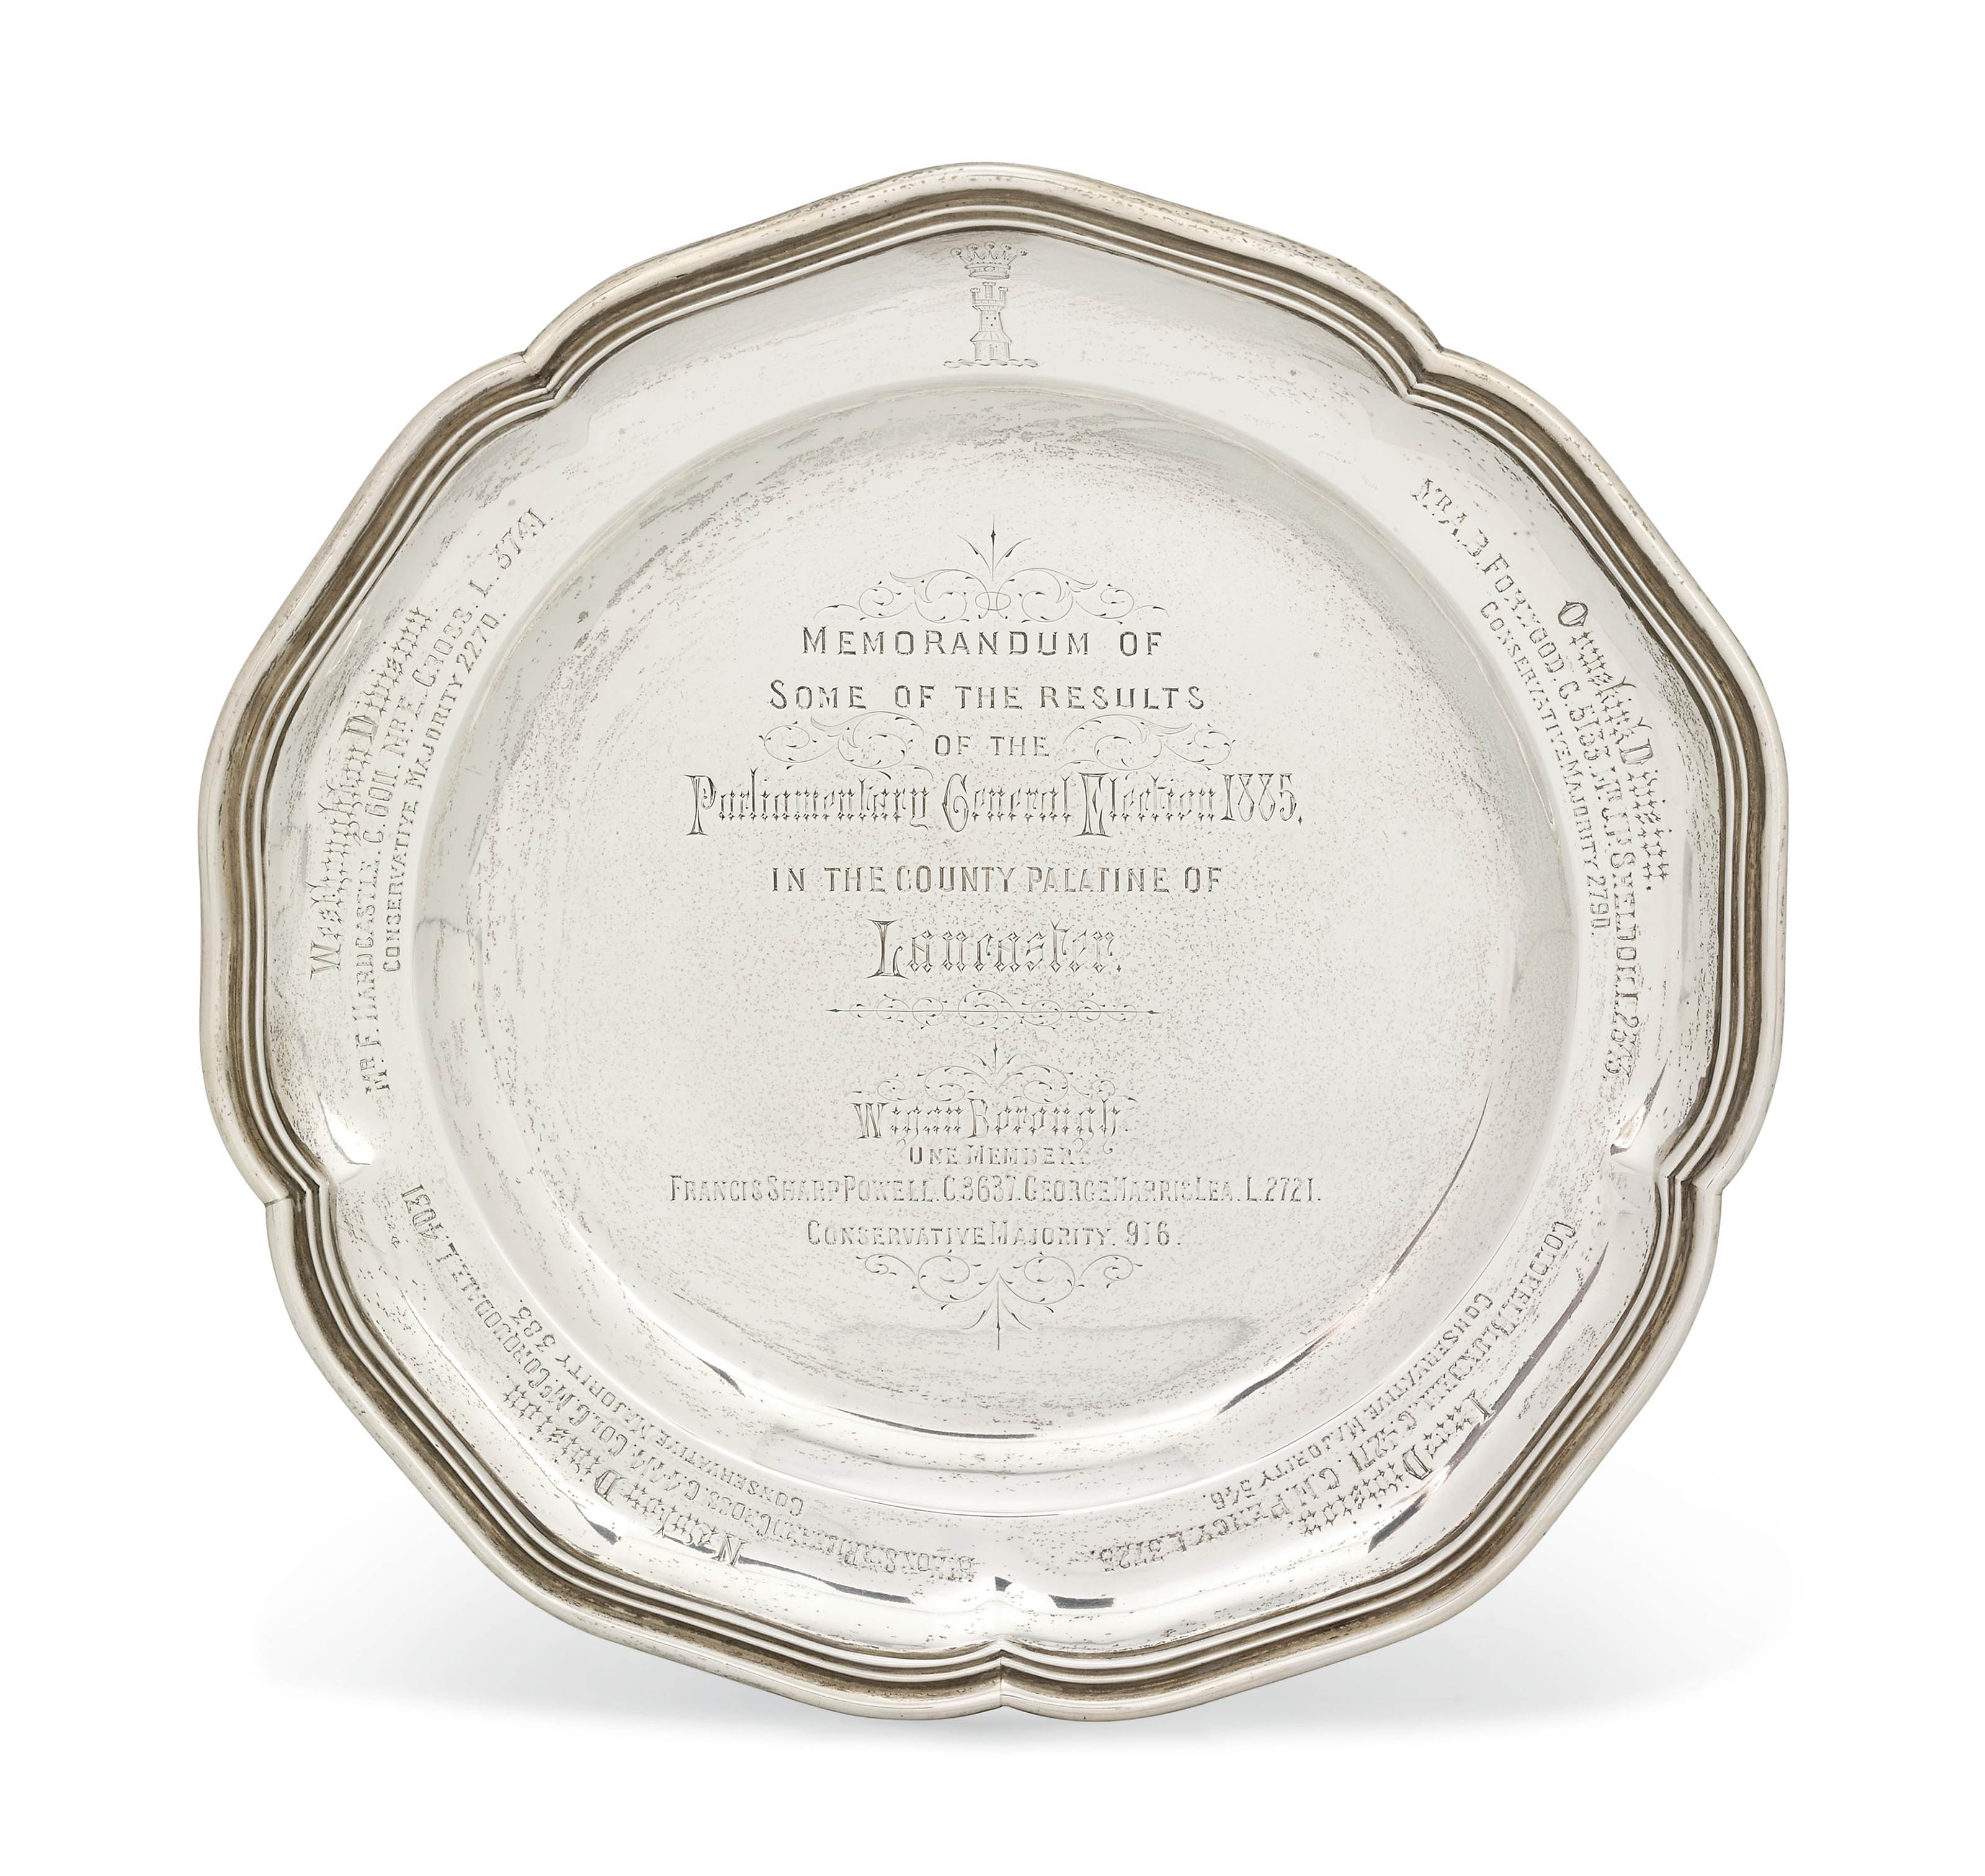 BENJAMIN DISRAELI:- A VICTORIAN SILVER PLATE WITH LATER GENERAL ELECTION INSCRIPTION